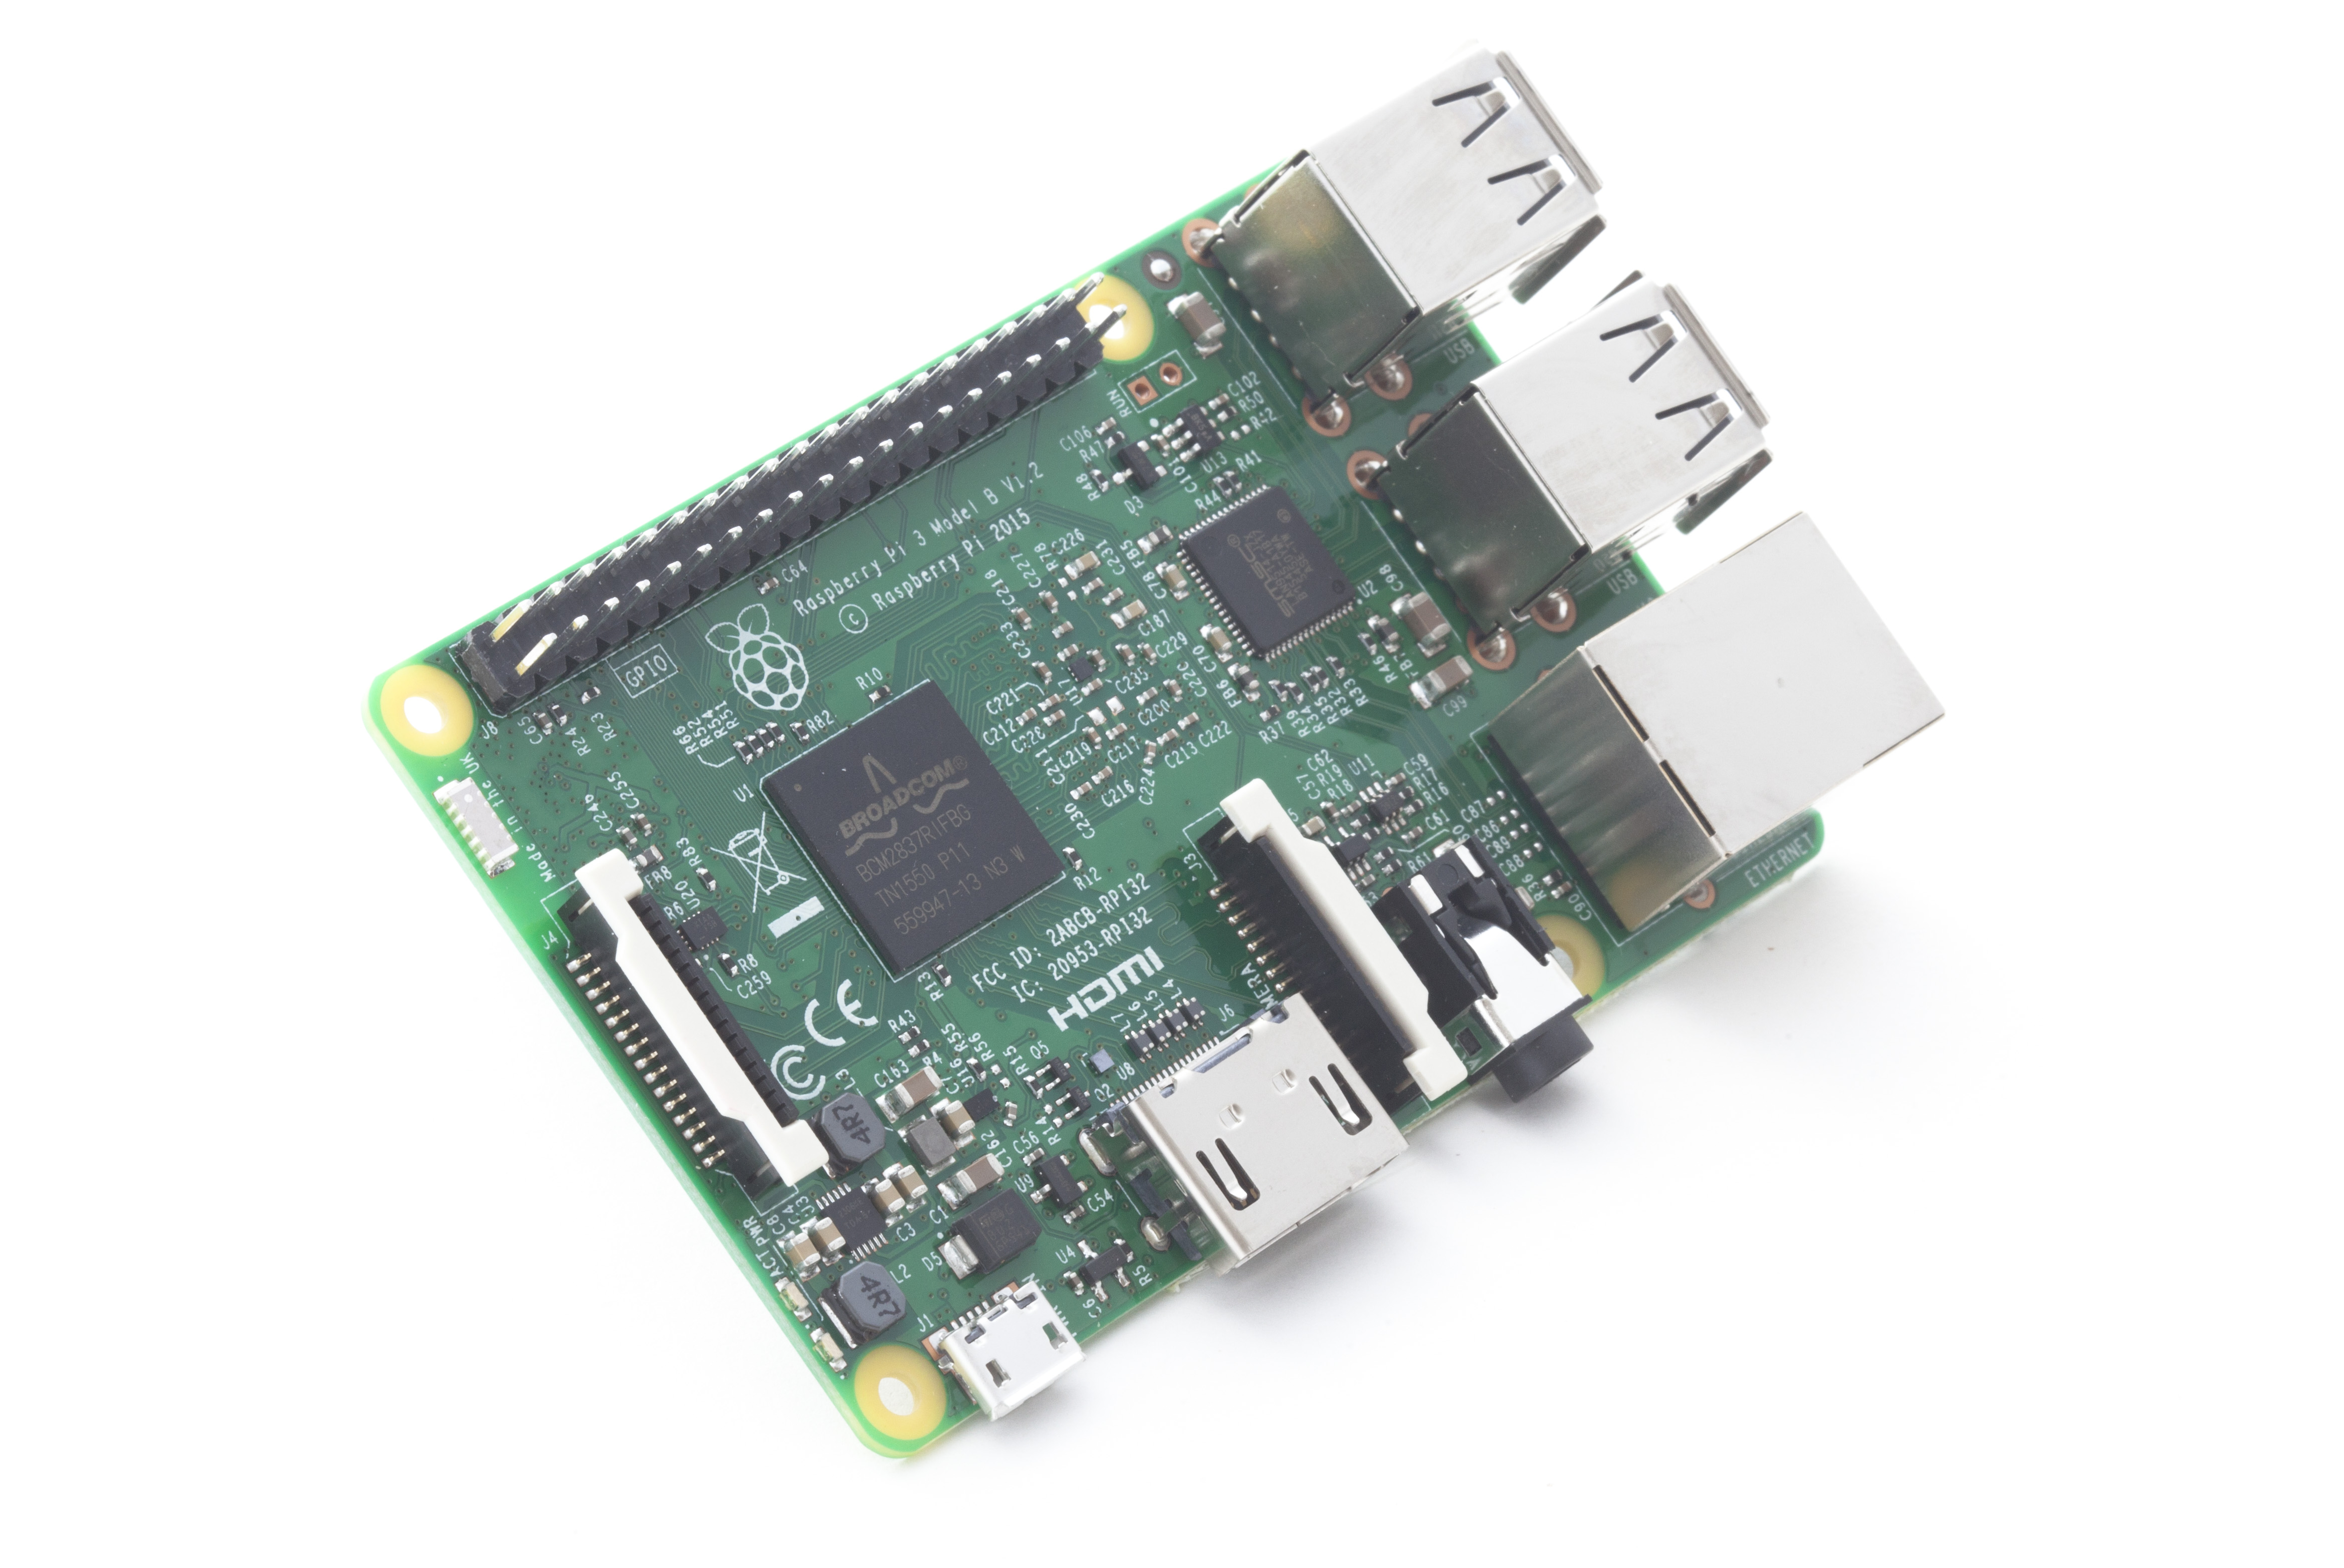 Raspberry Pi 3 on sale at $35